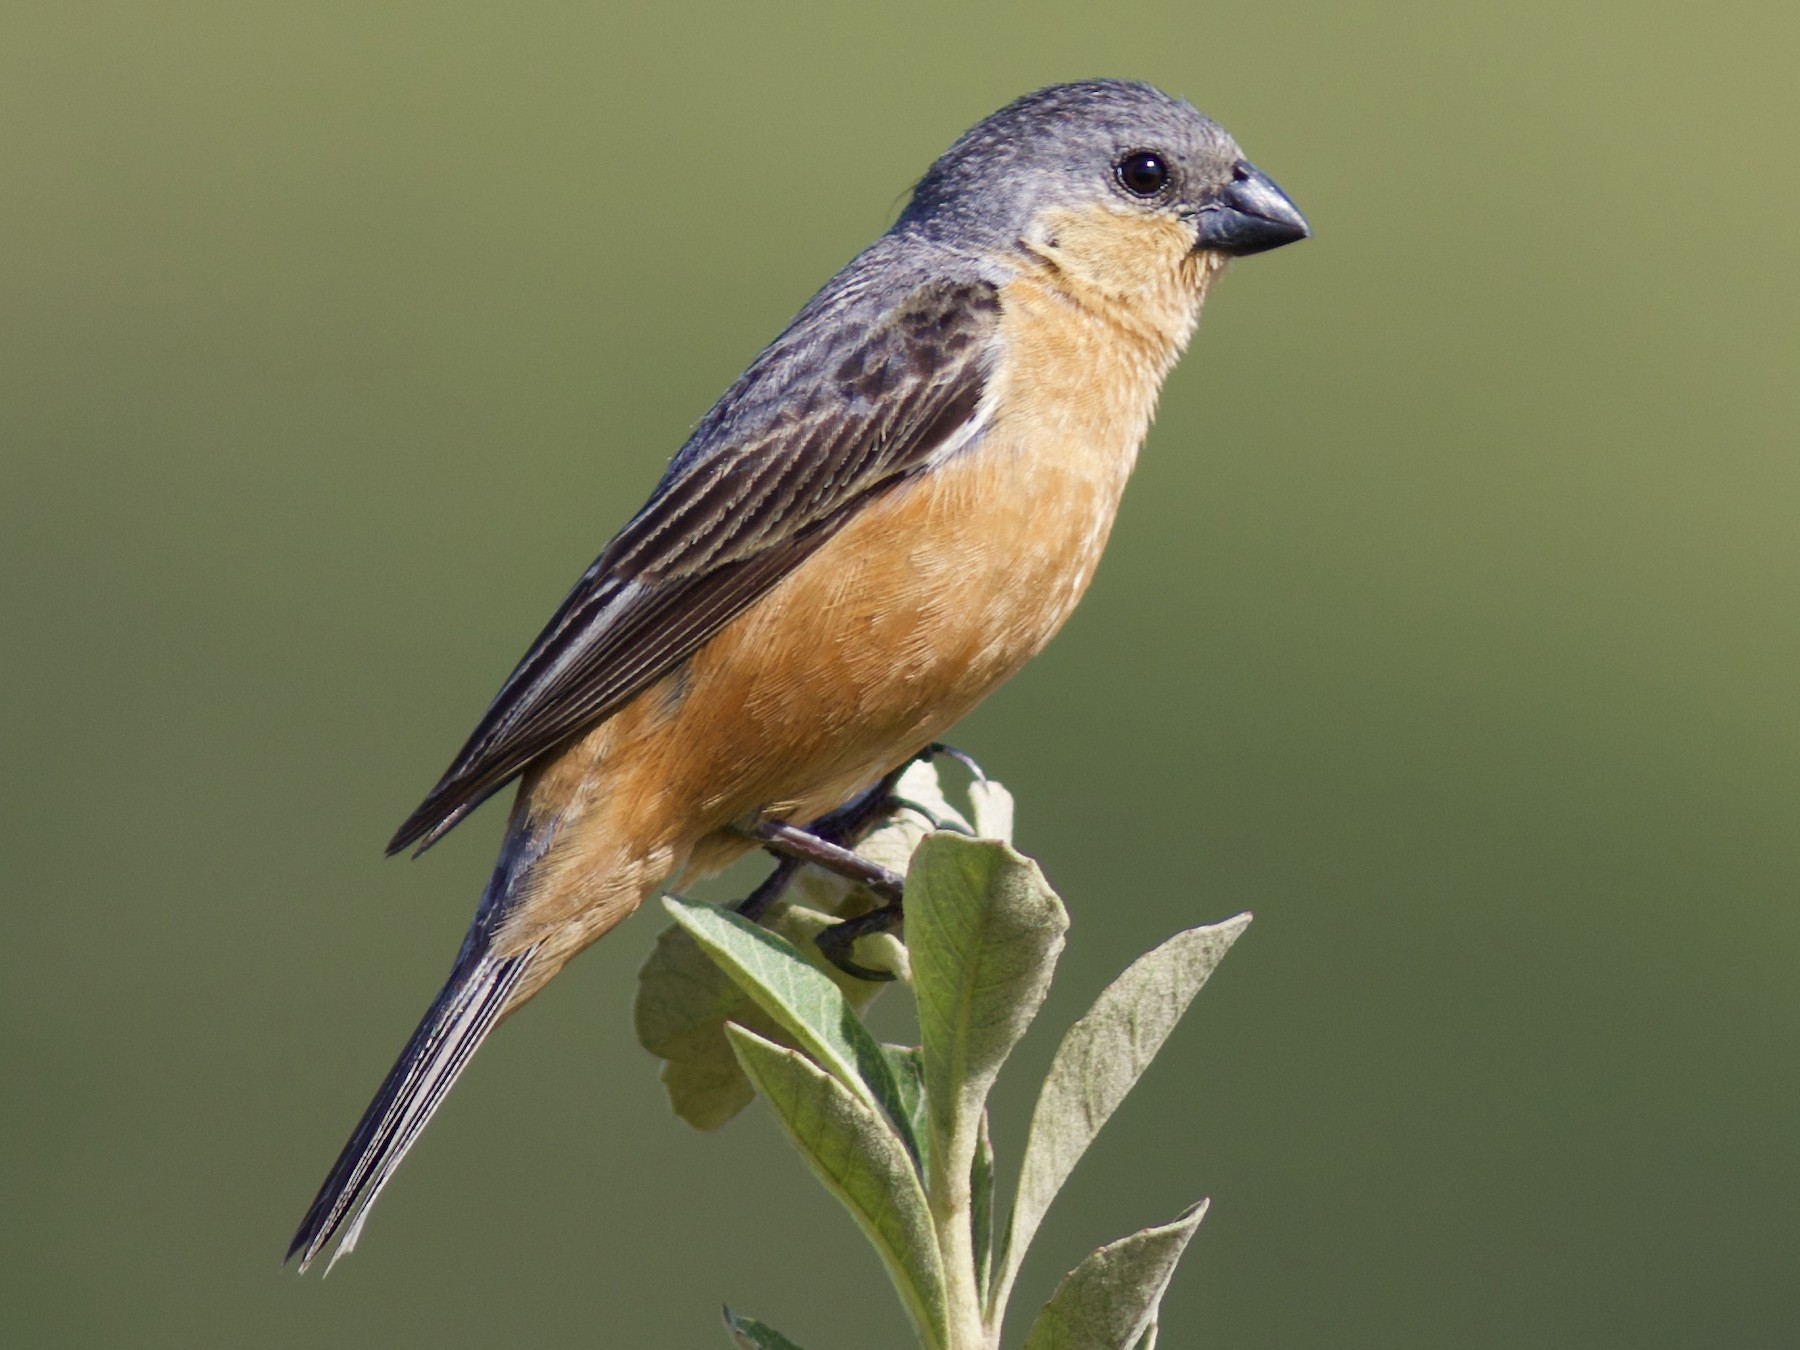 Tawny-bellied Seedeater - Luiz Matos